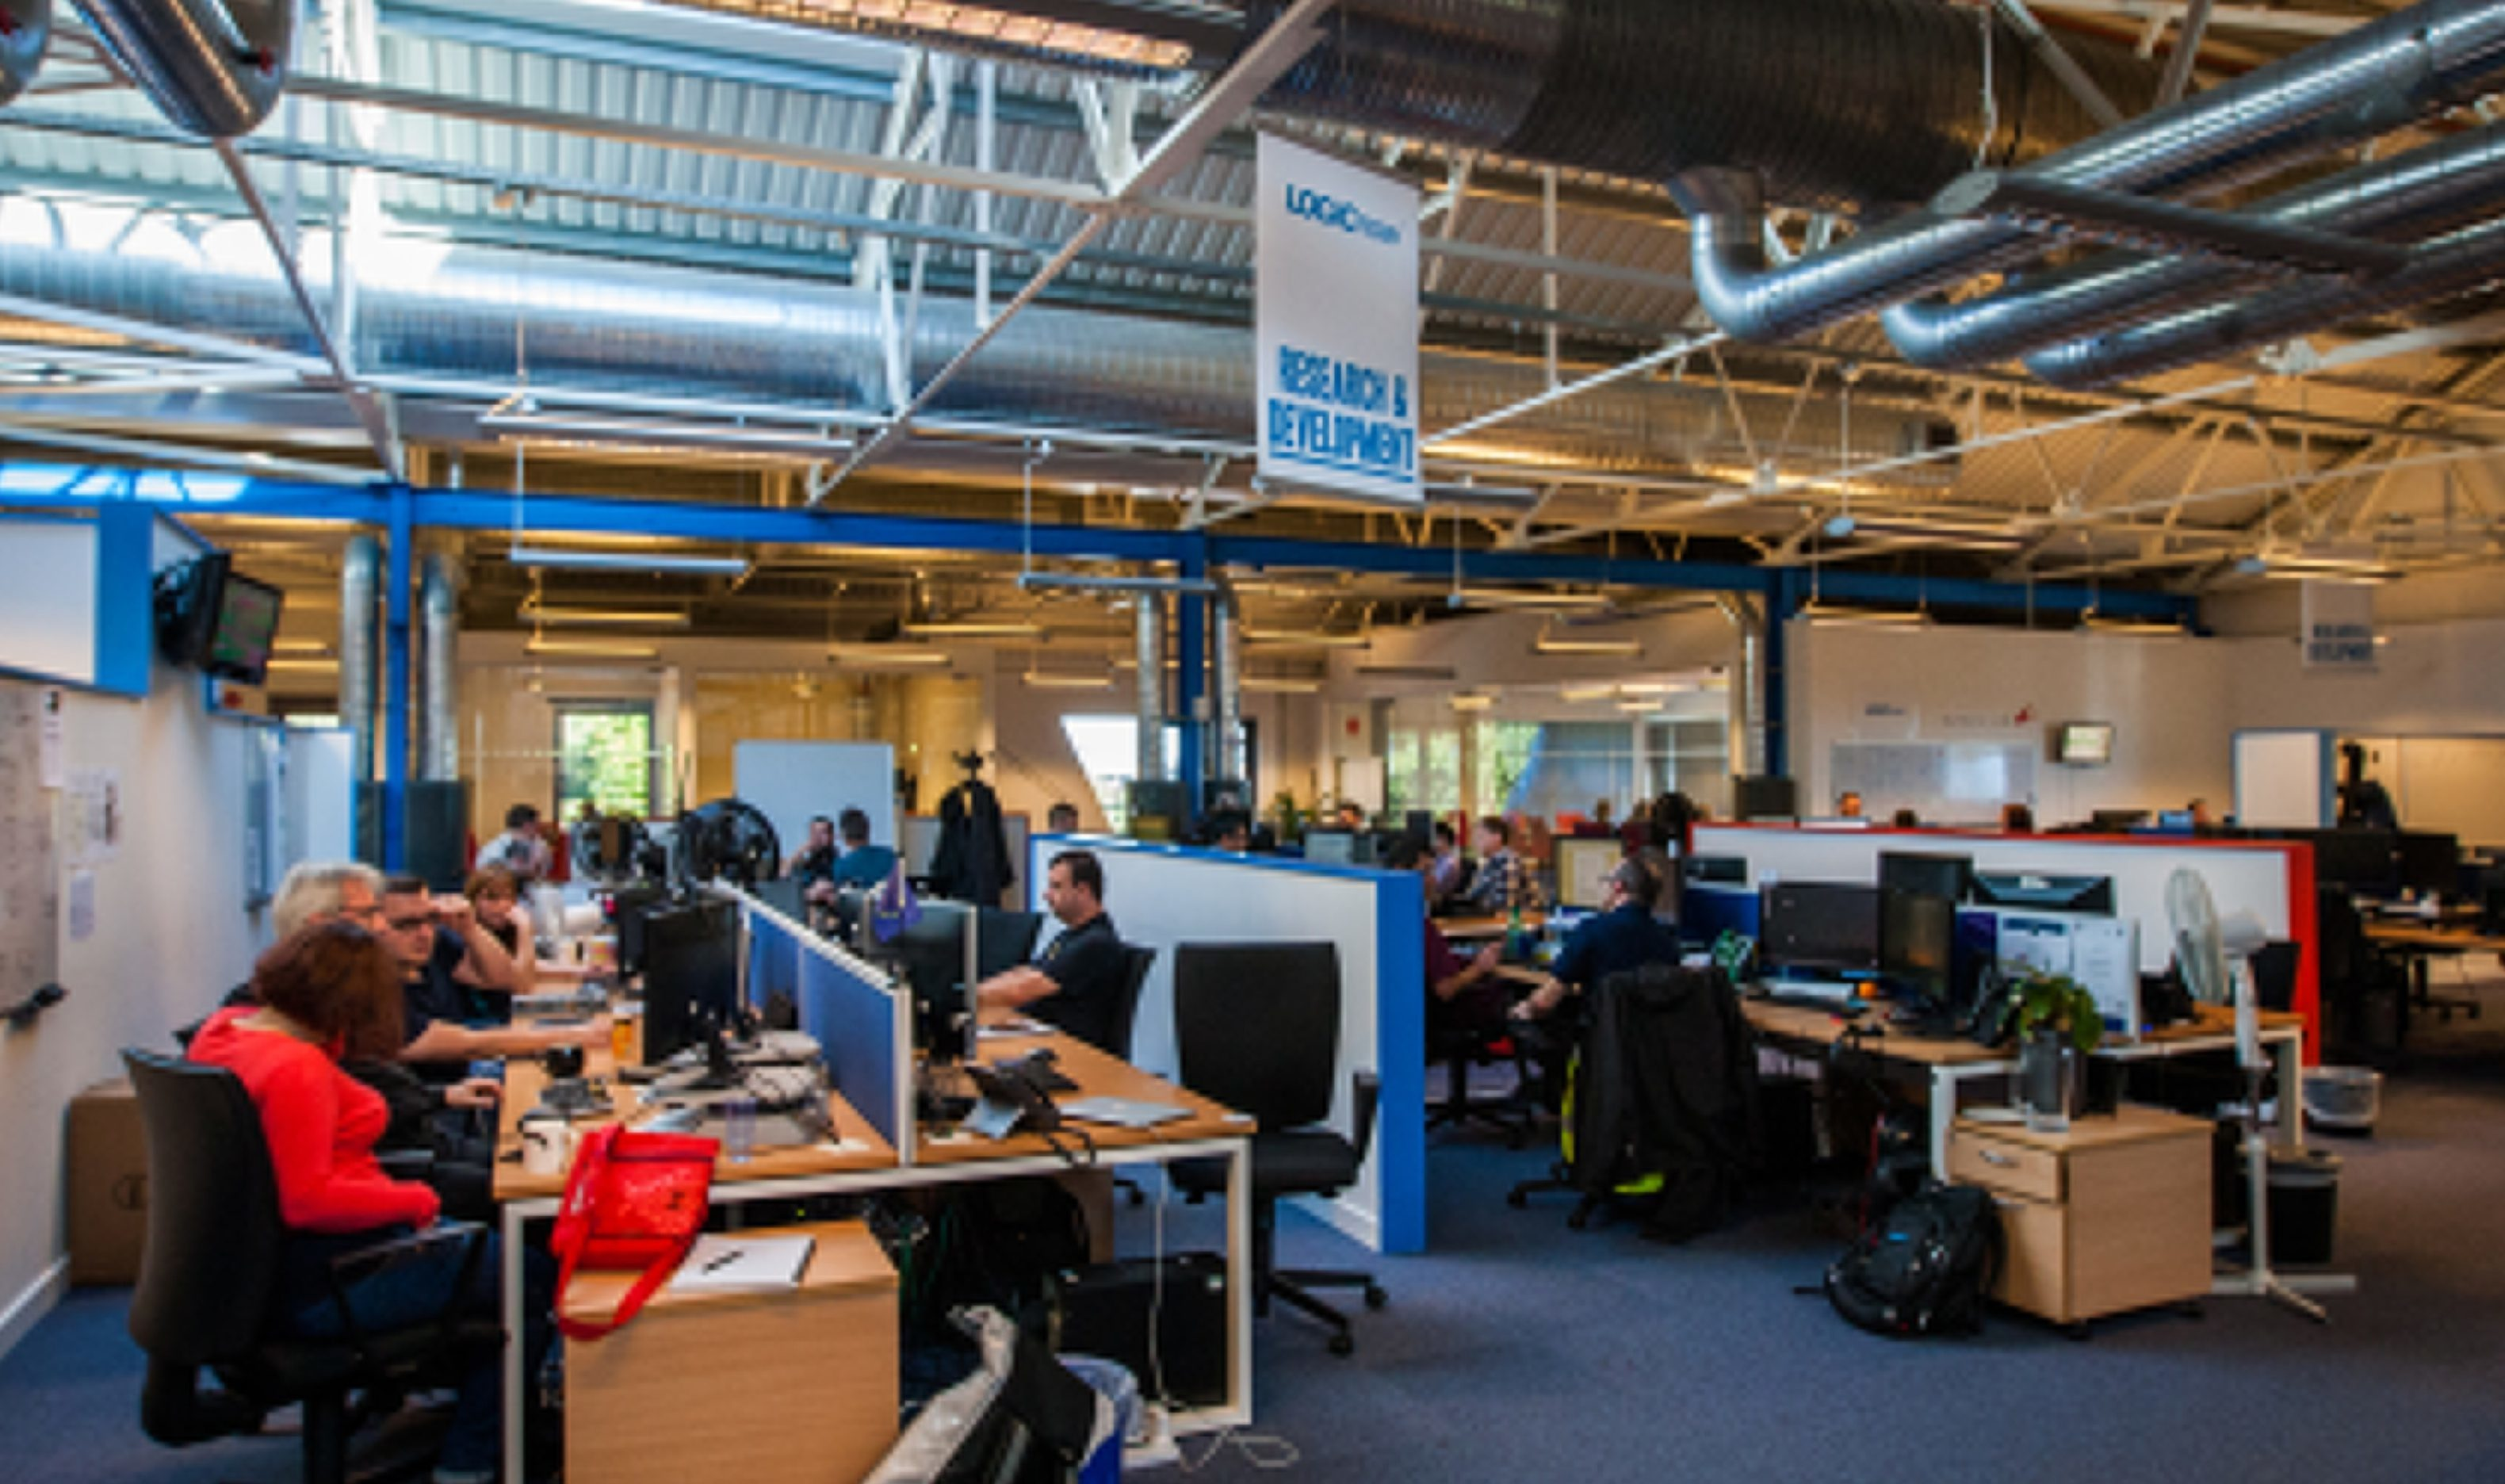 LOGICnow is a major employer in Dundee